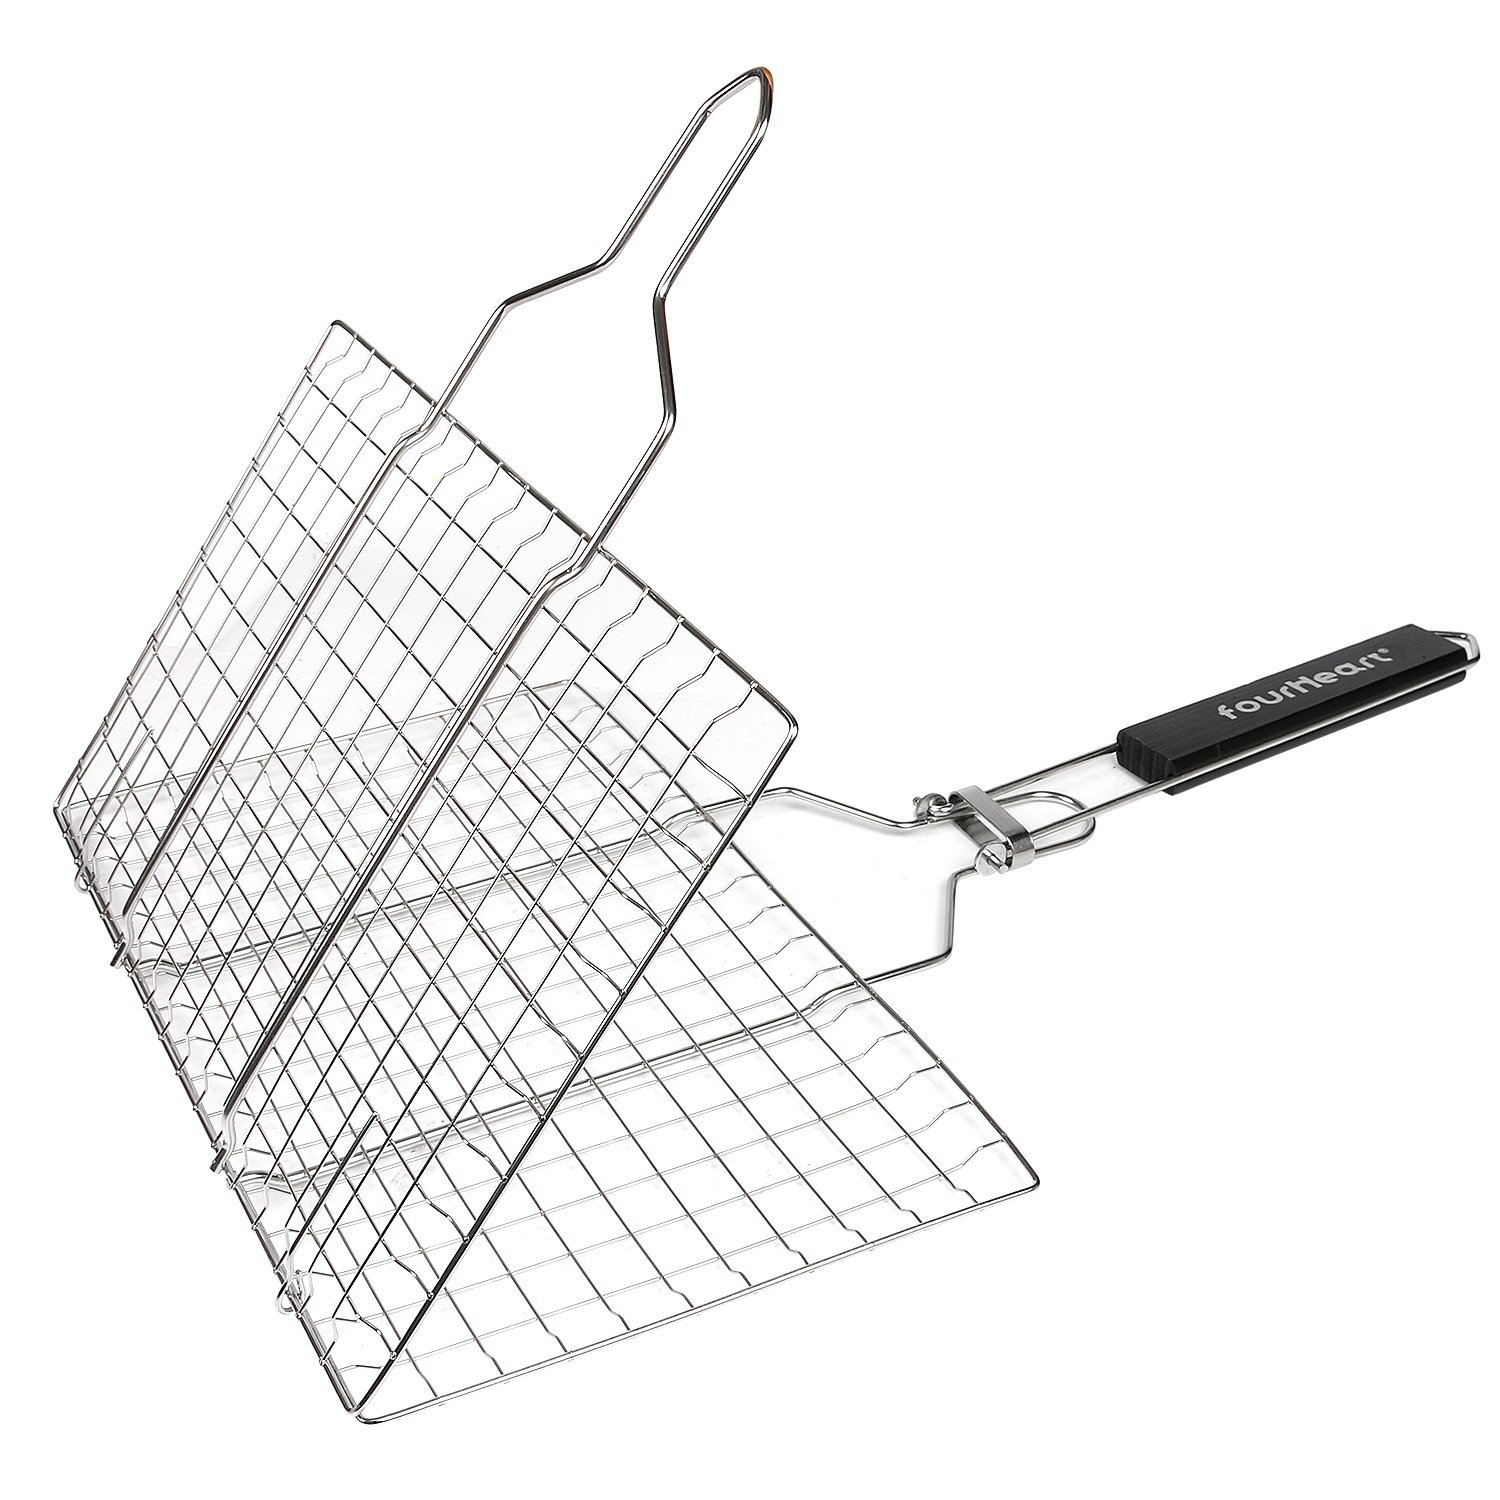 Buy Tool Wizard Rotisserie Grill Basket Vegetable Grill